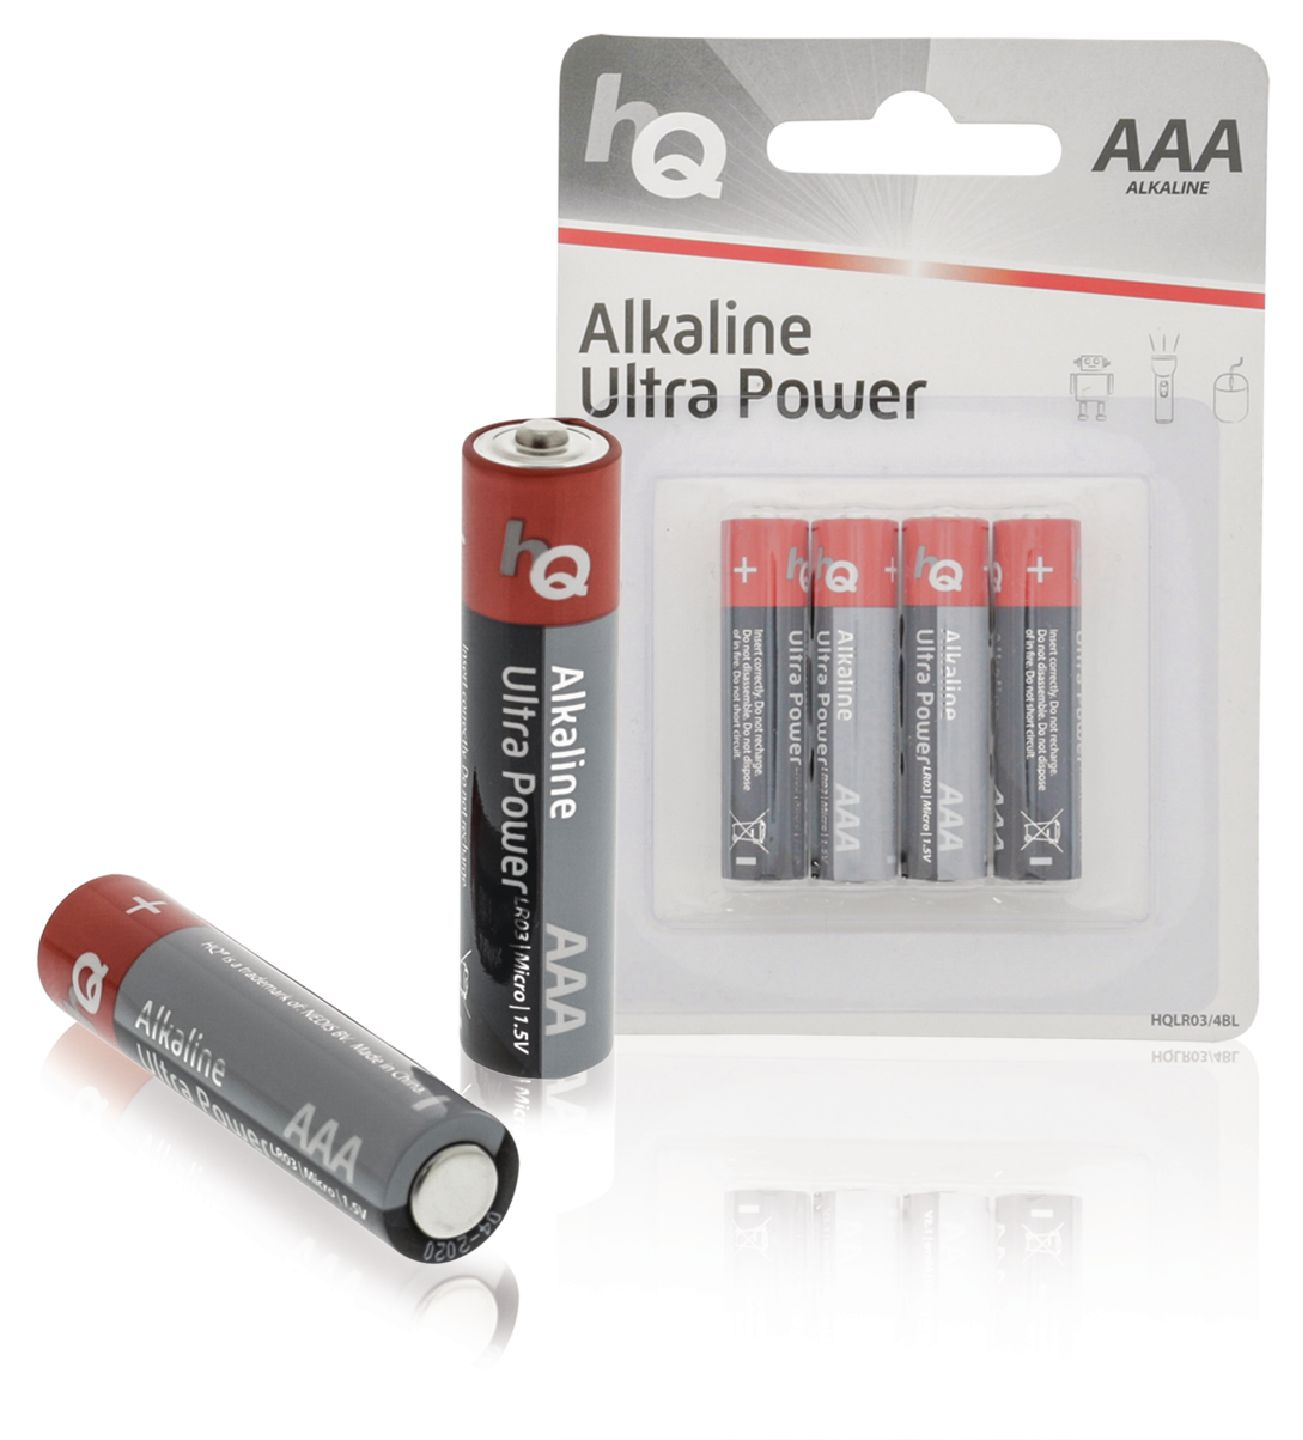 Alkalická baterie HQ Ultra Power AAA 1.5 V, 4ks, HQLR03/4BL